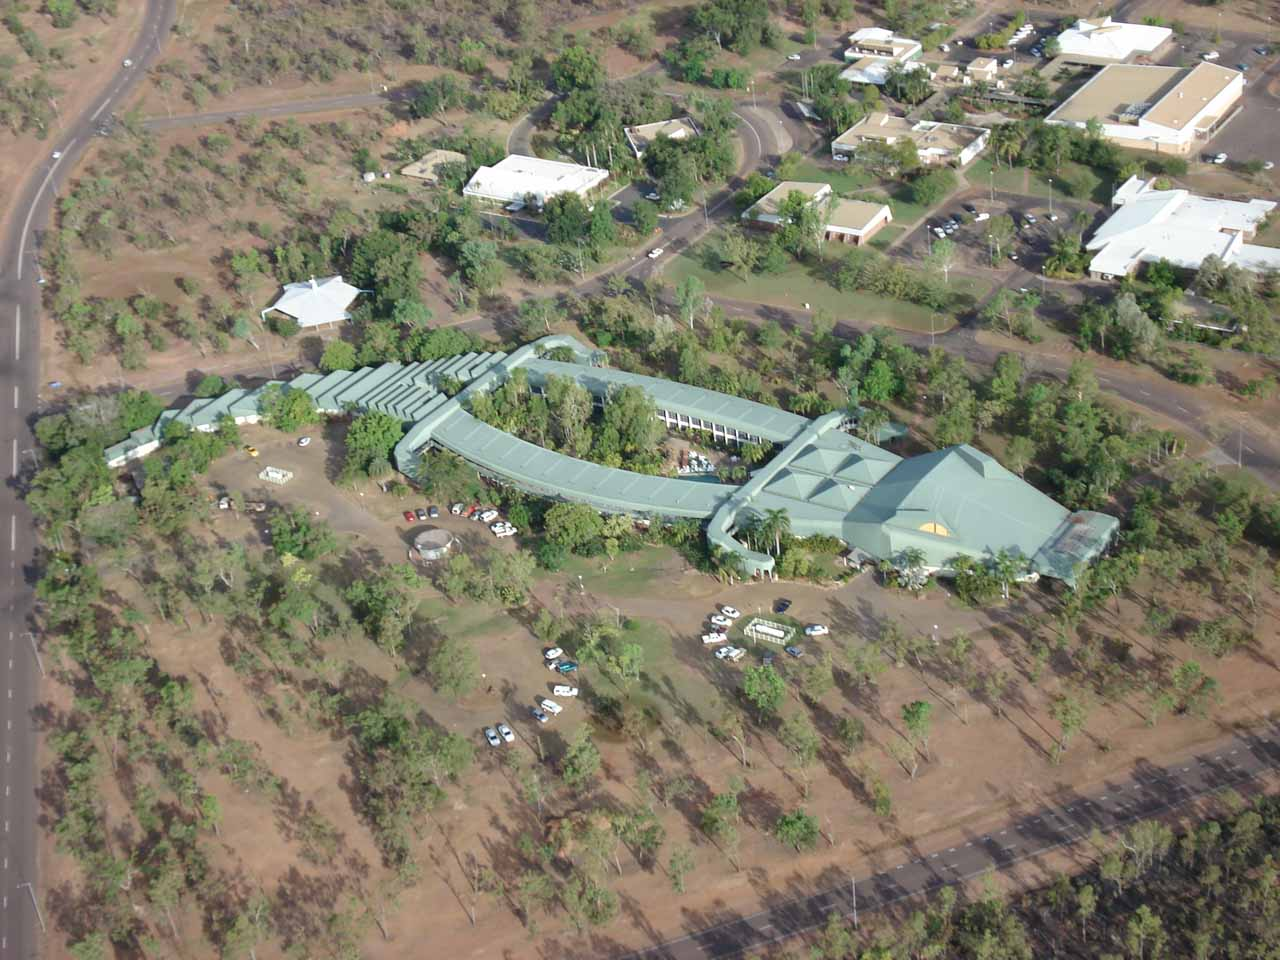 Our helicopter tour of Jim Jim Falls took off from Jabiru, where we got this area view of this crocodile-shaped hotel